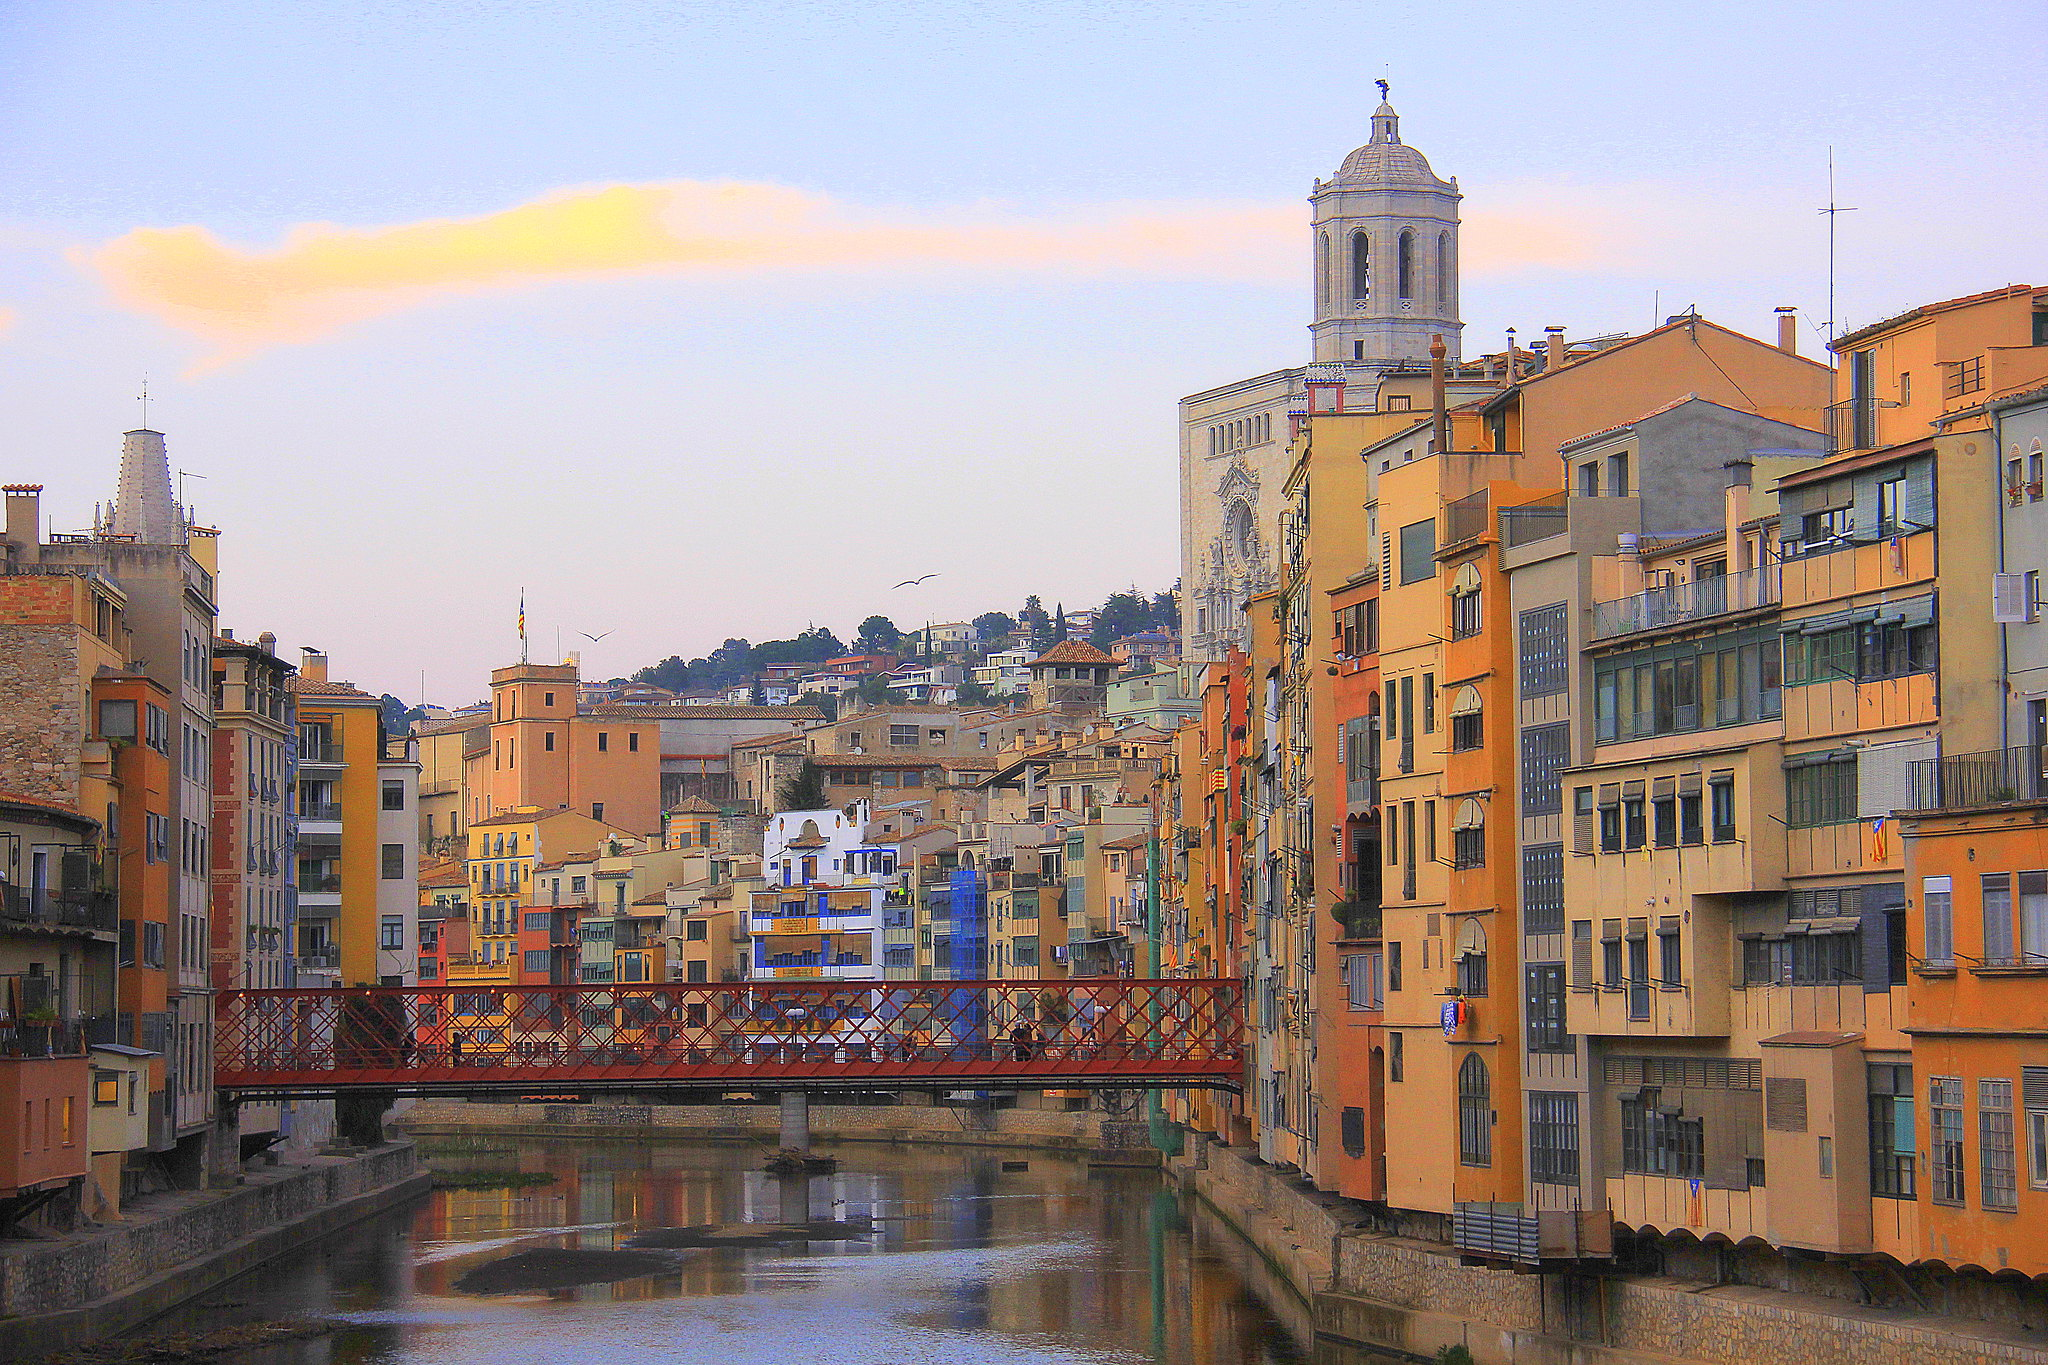 Girona is postcard pretty